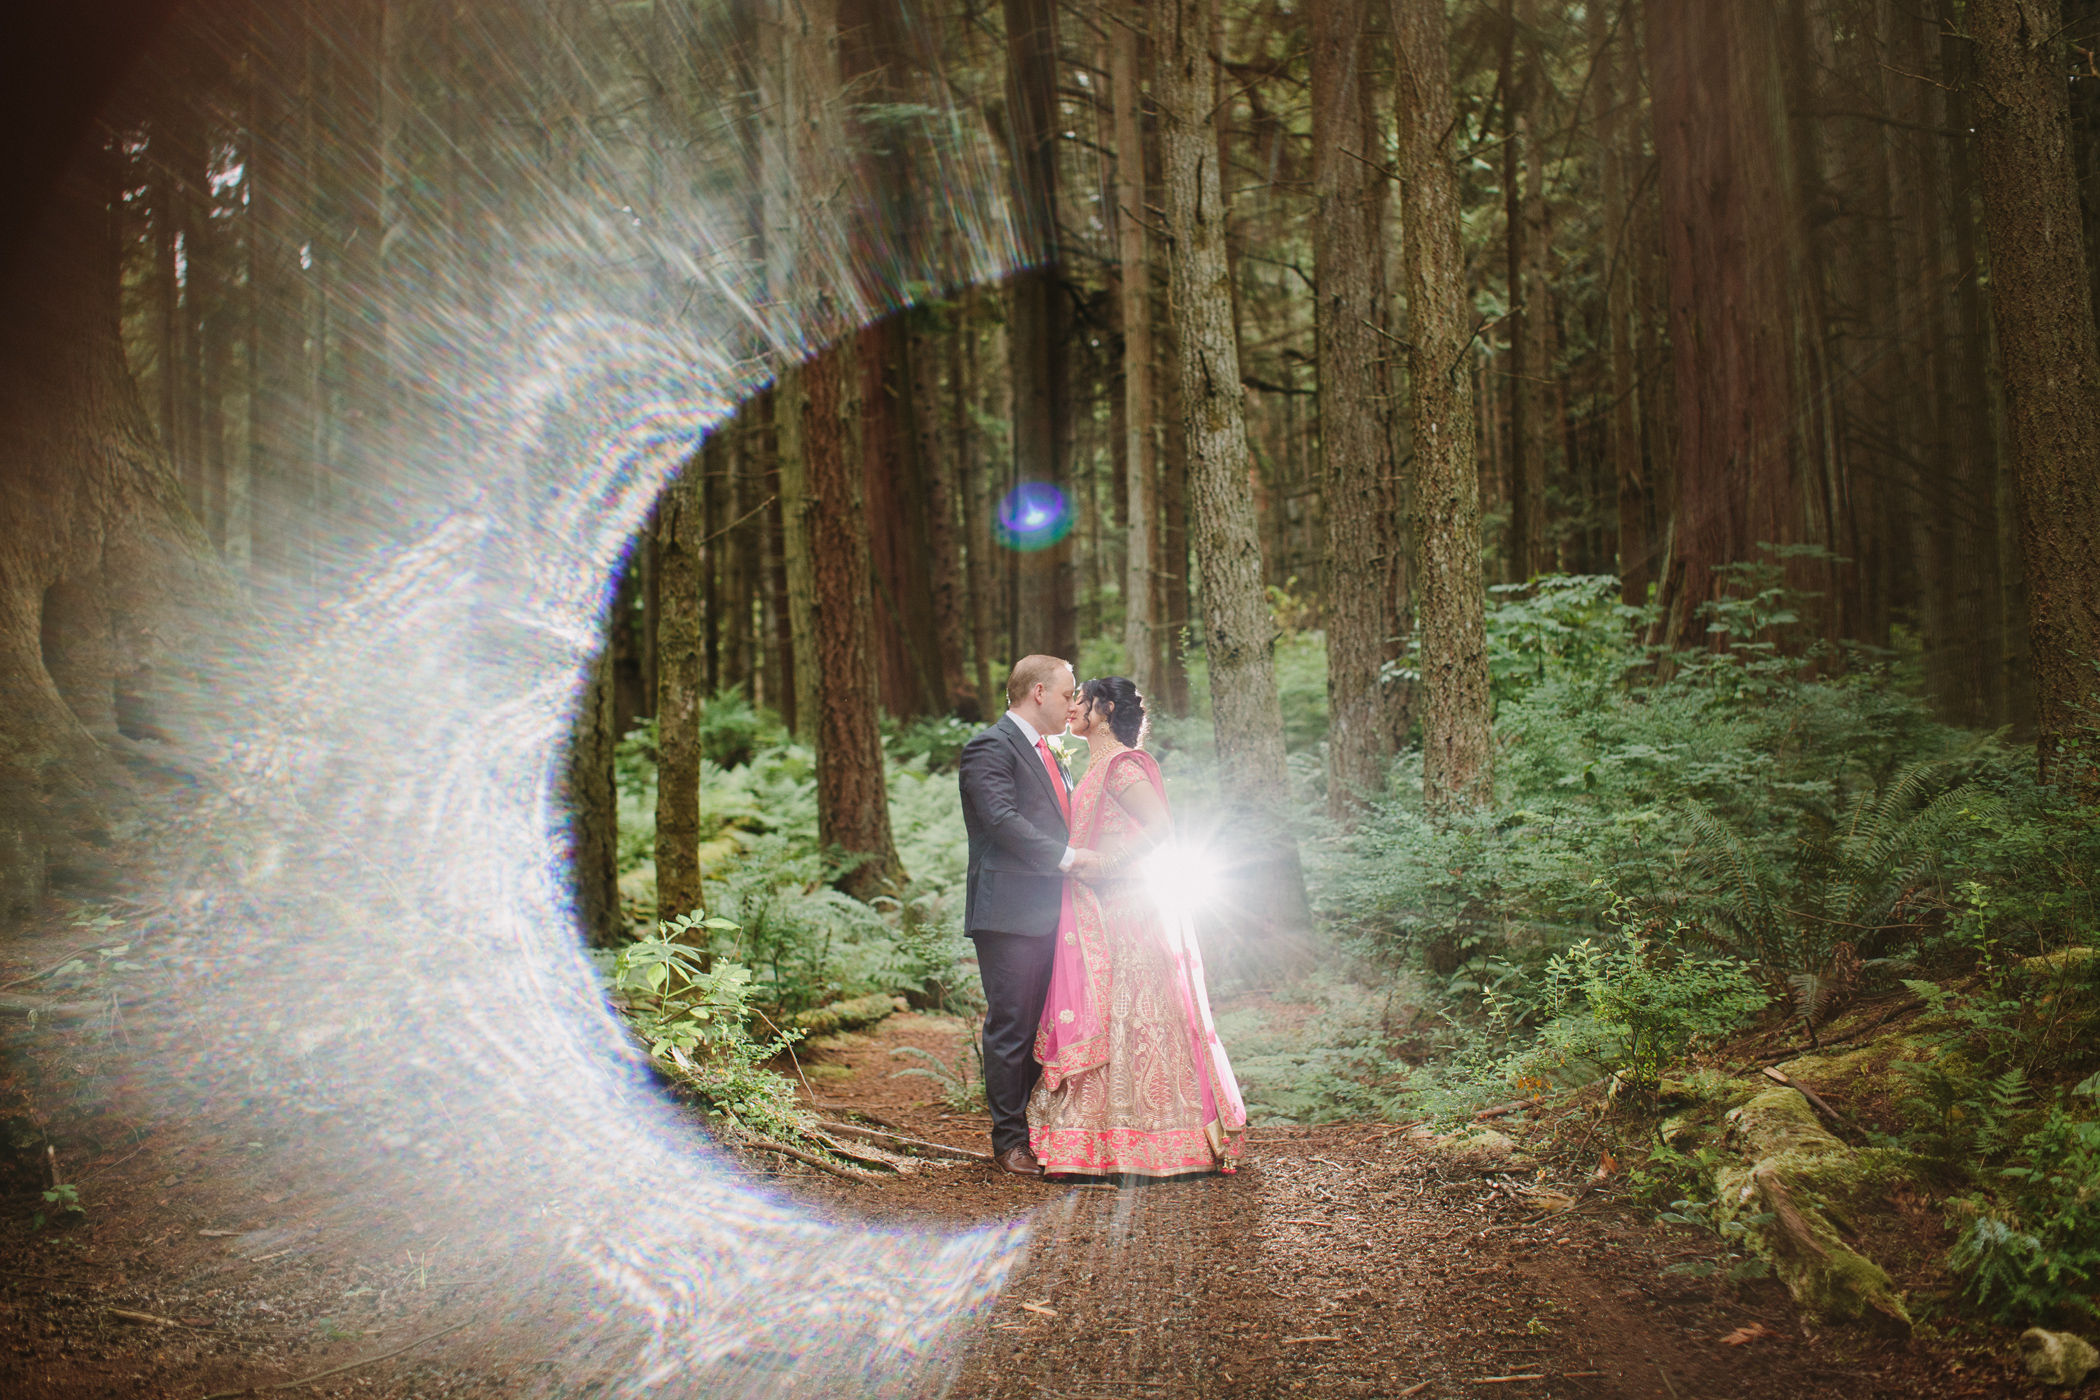 Stanley Park Creative Bride and Groom portrait